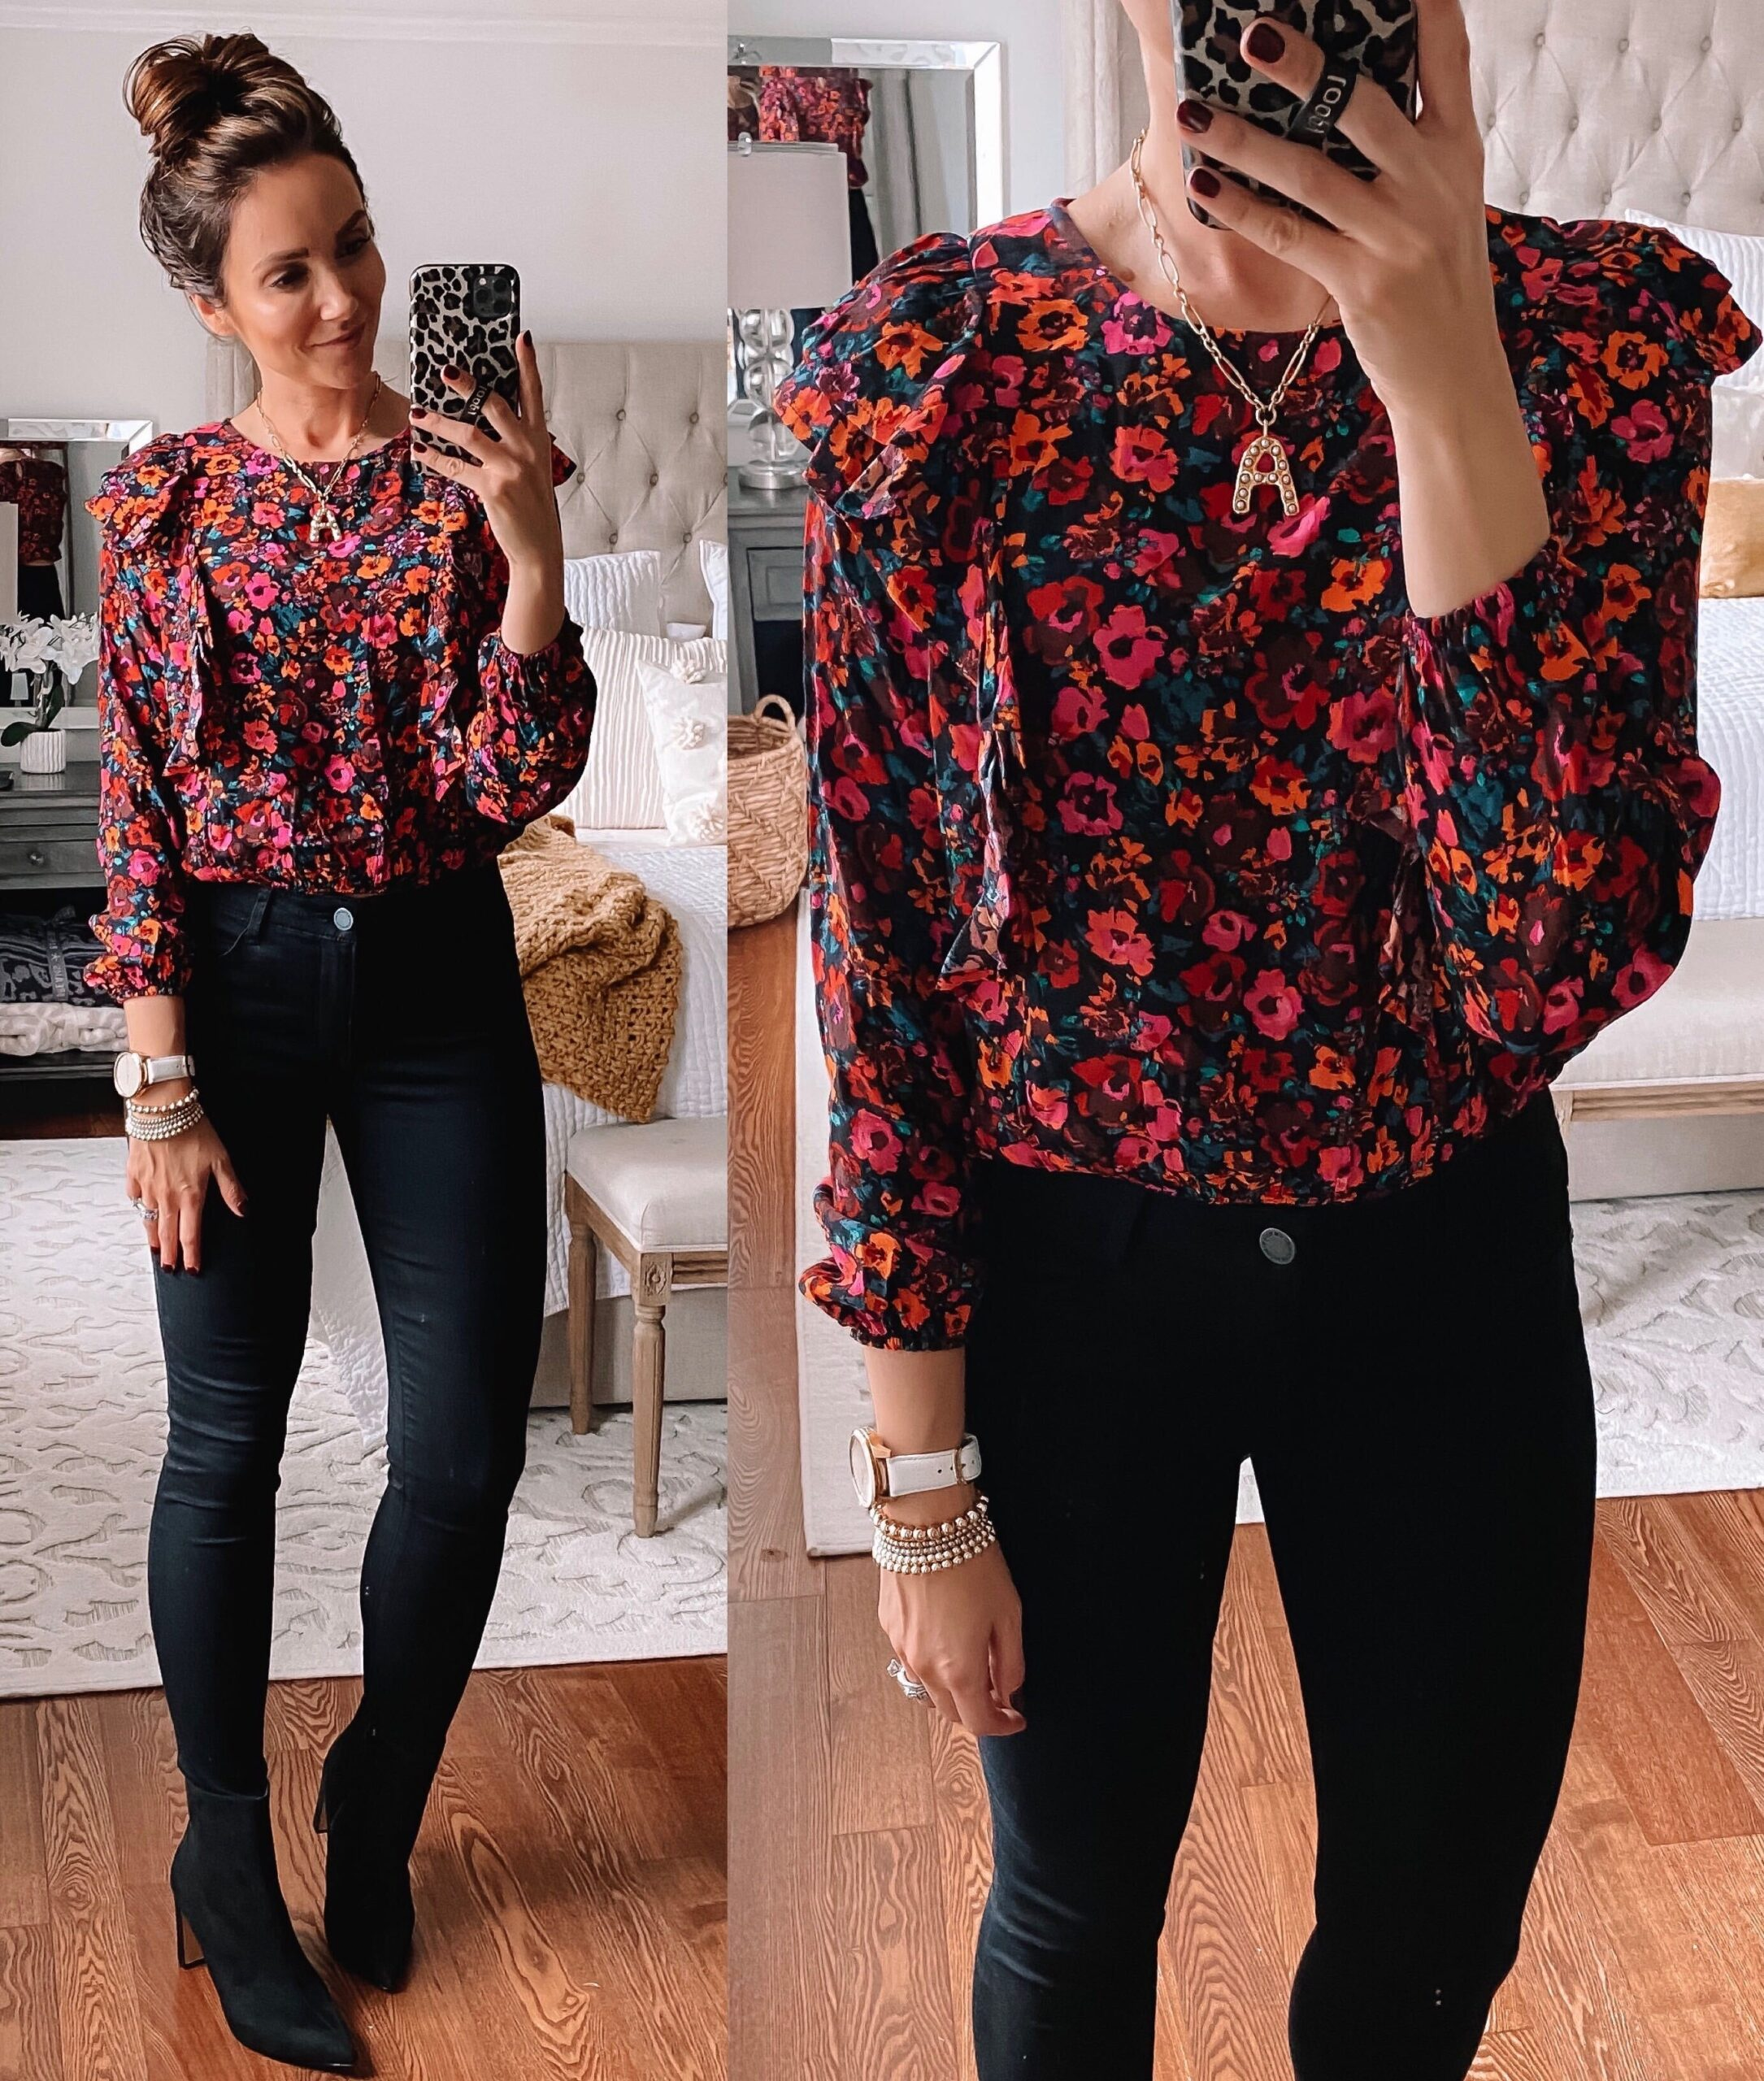 target style, target floral blouse with black jeans